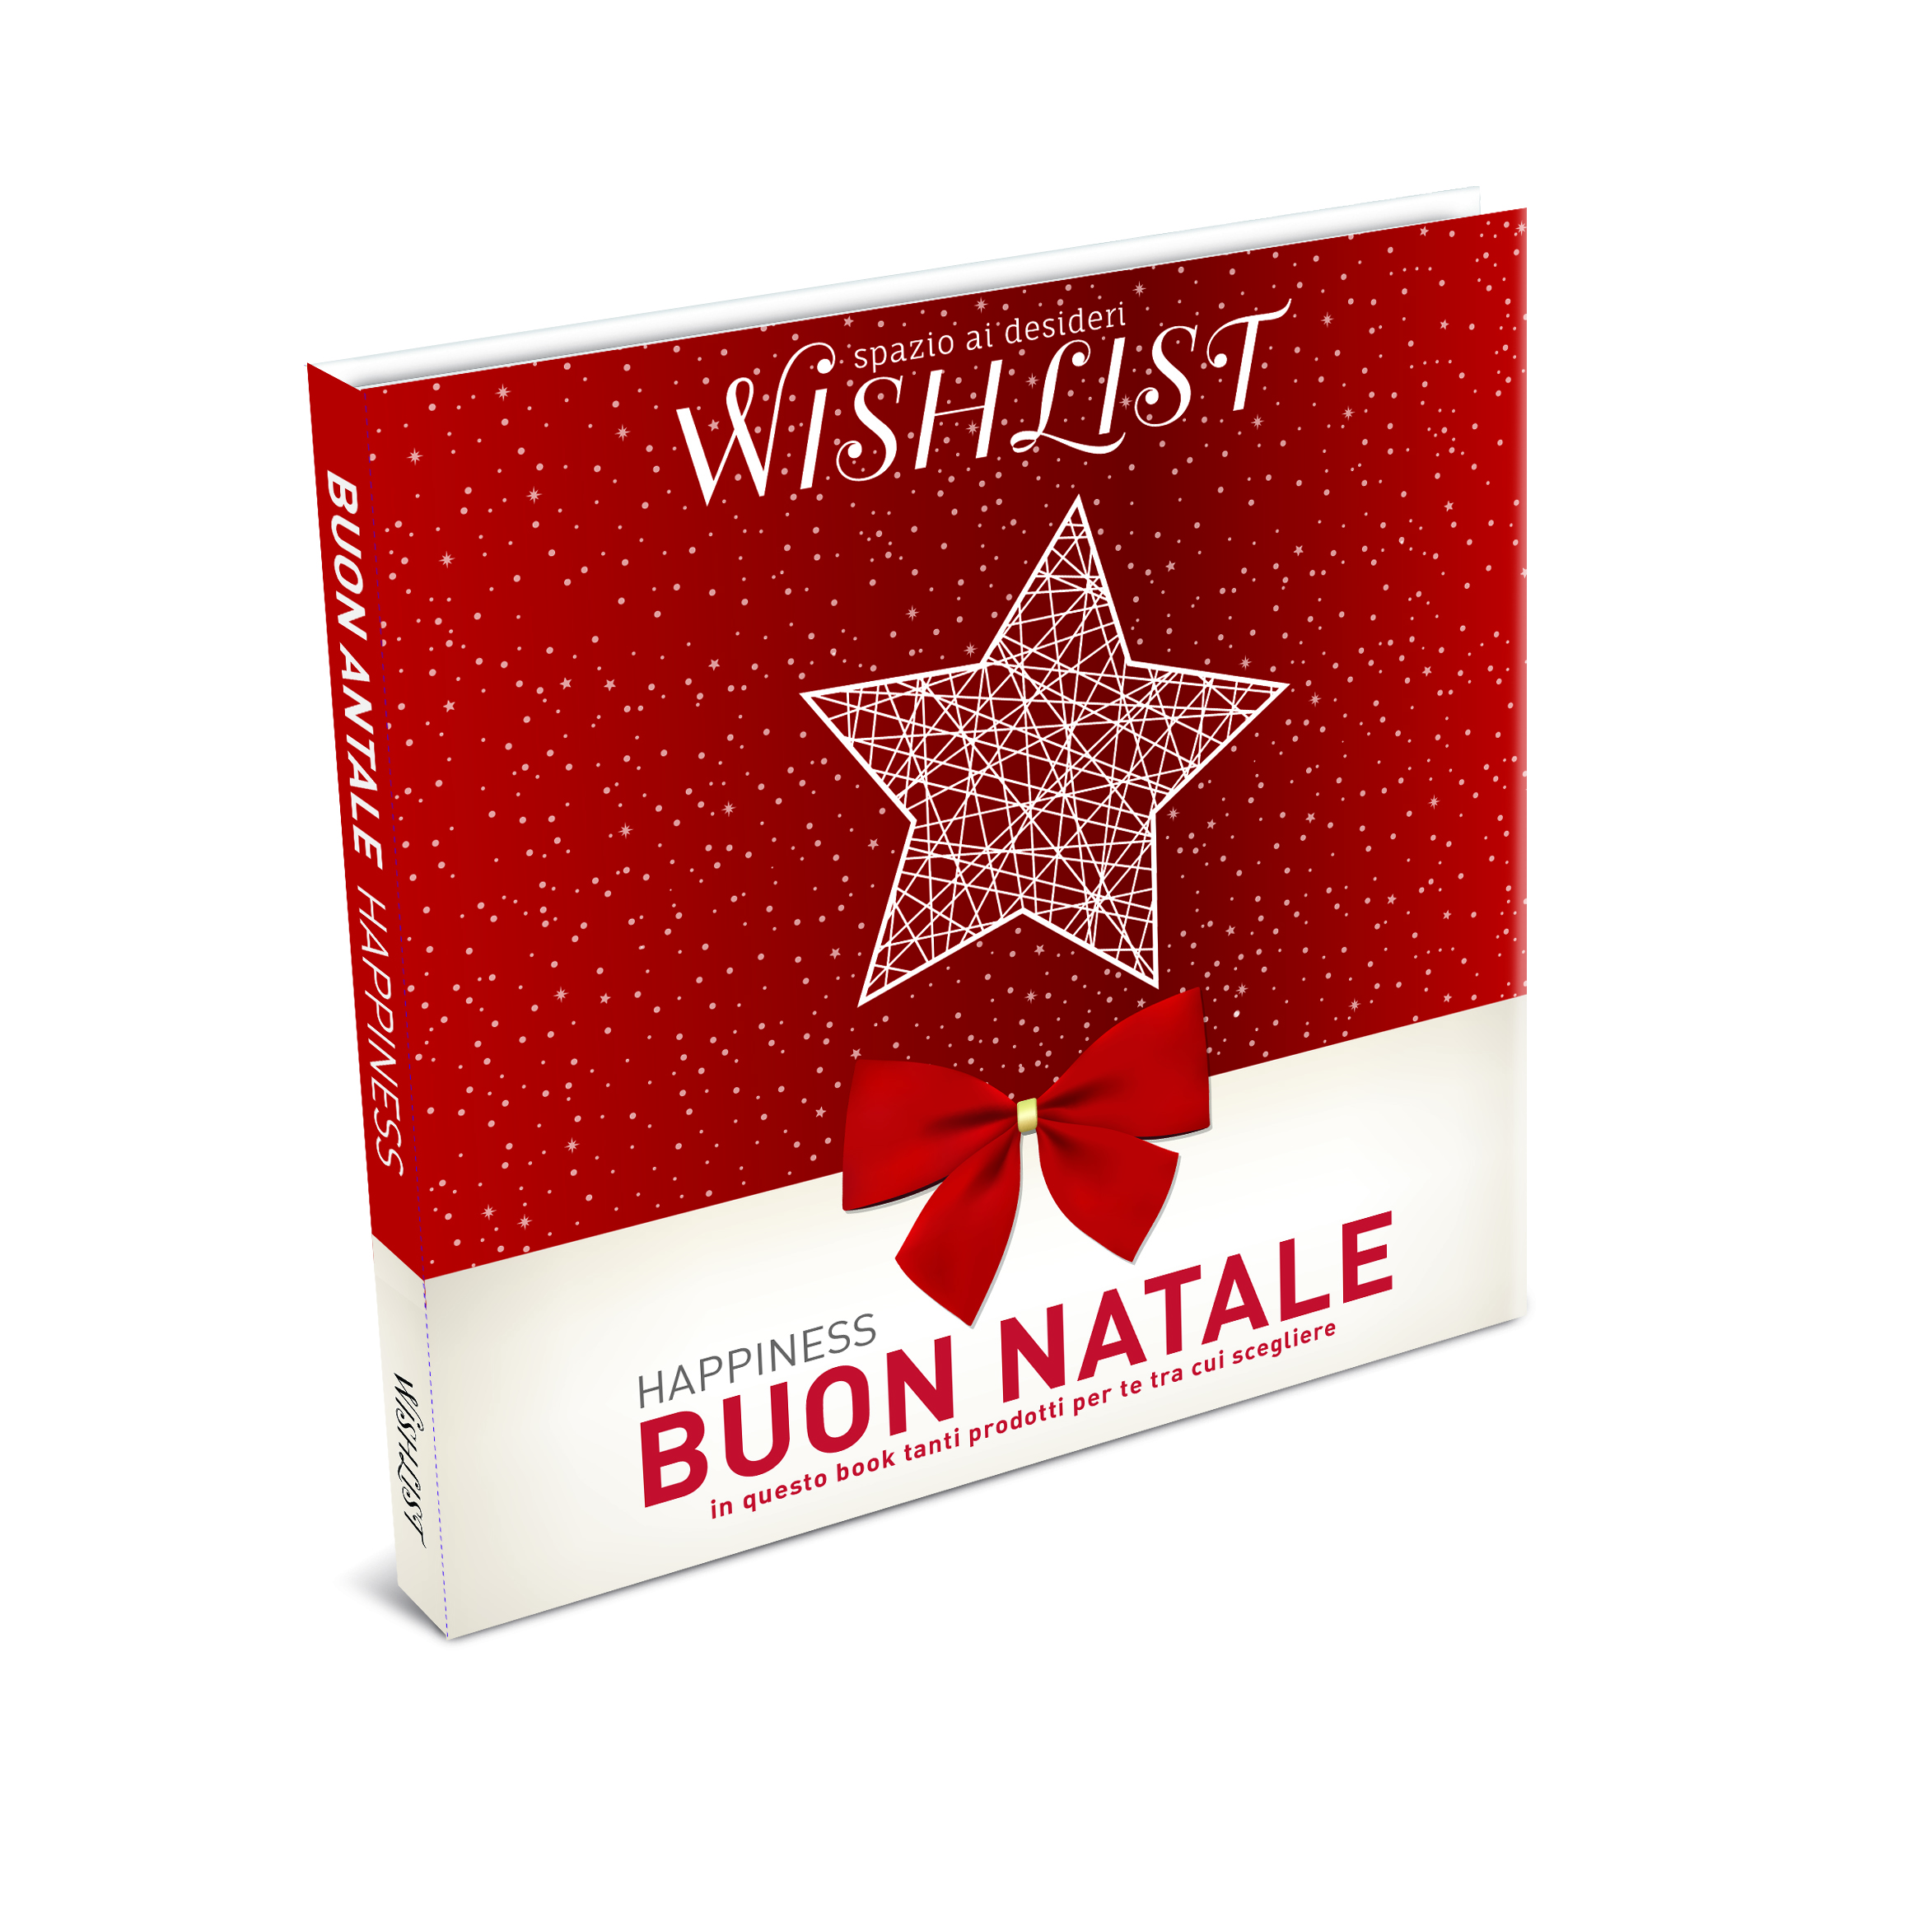 https://www.promotionmagazine.it/wp/wp-content/uploads/2013/11/NATALE-happiness.jpg